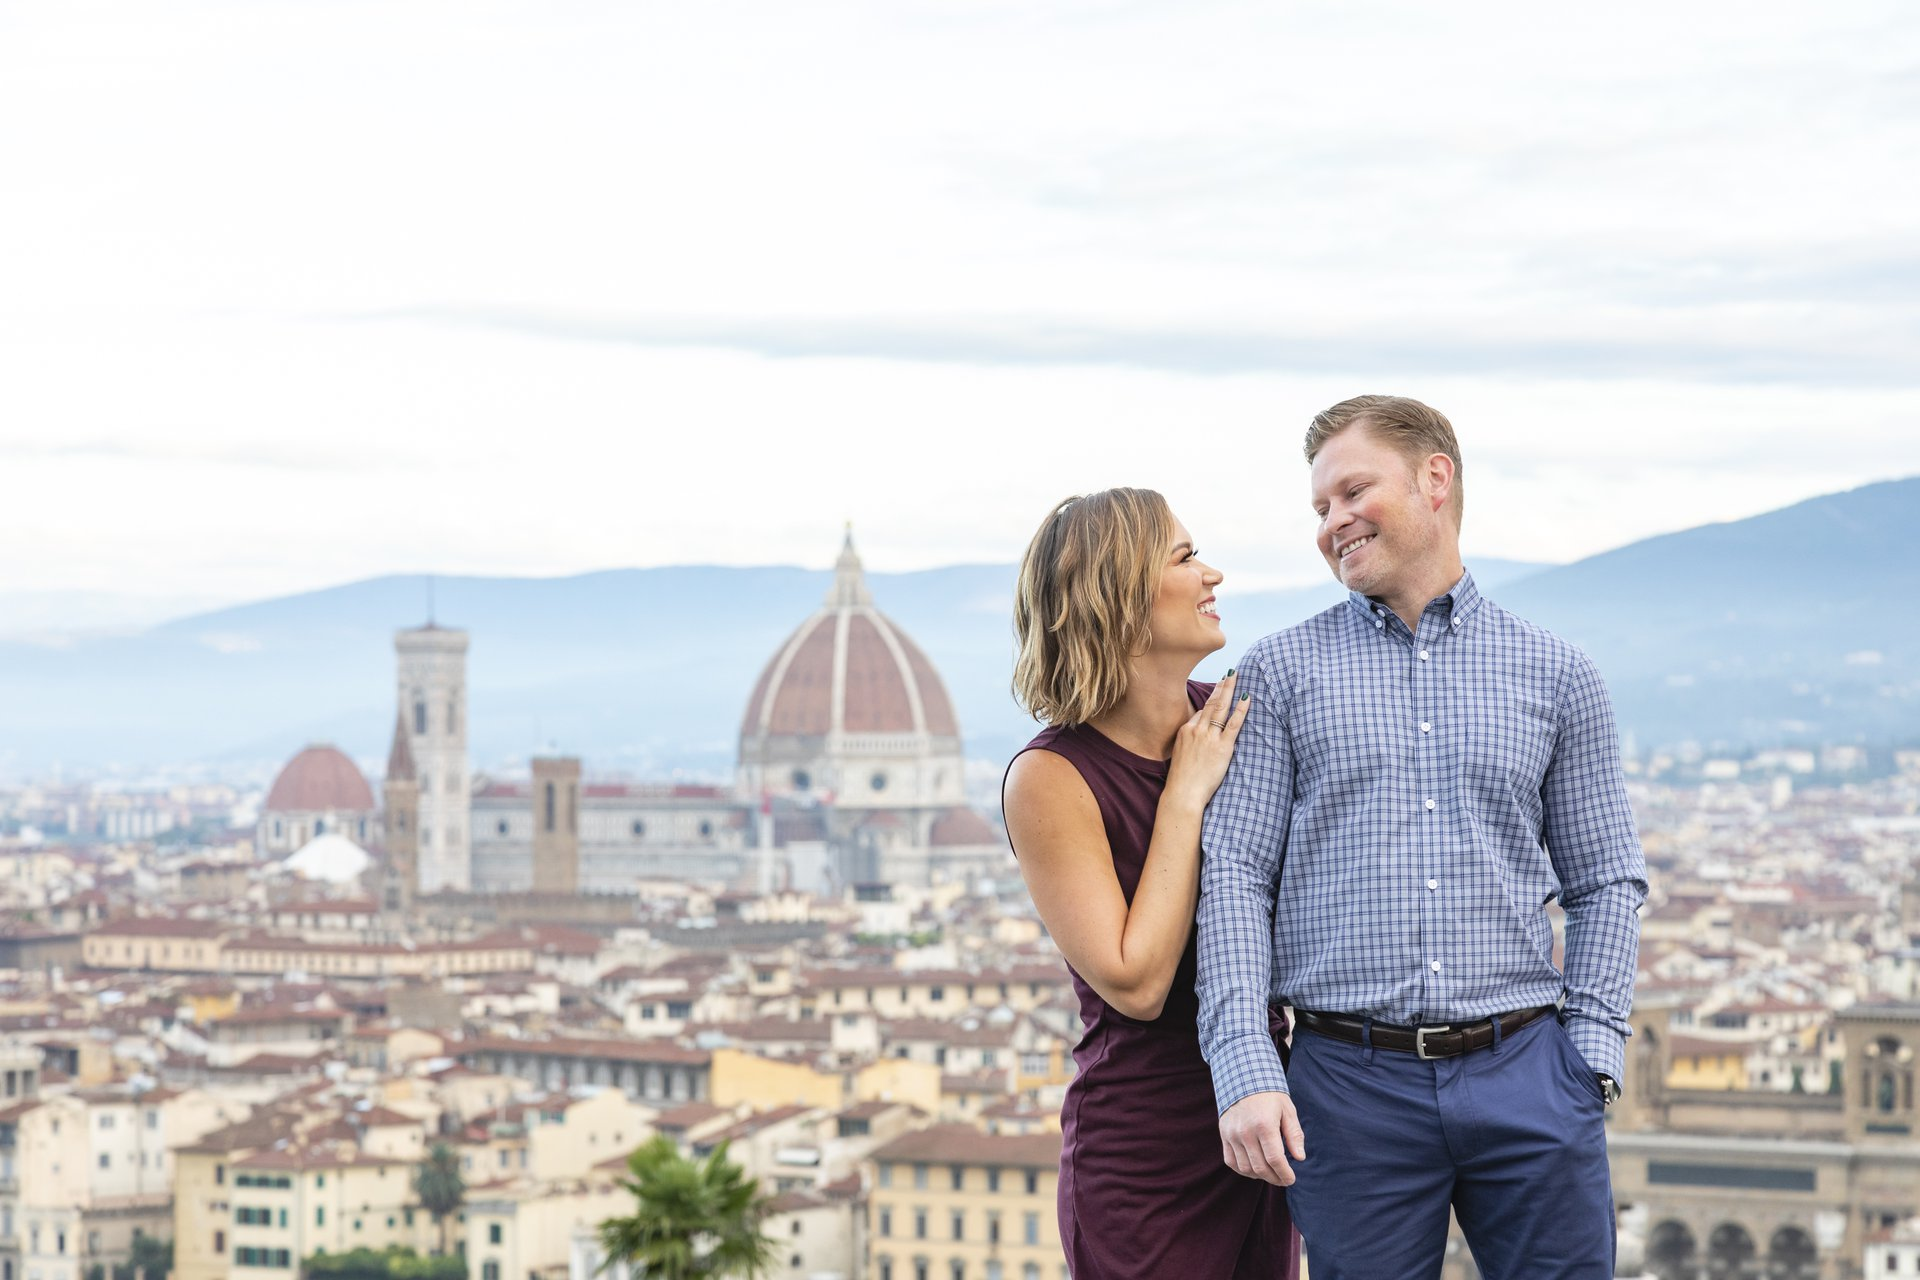 Florence-Italy-travel-story-Flytographer-3